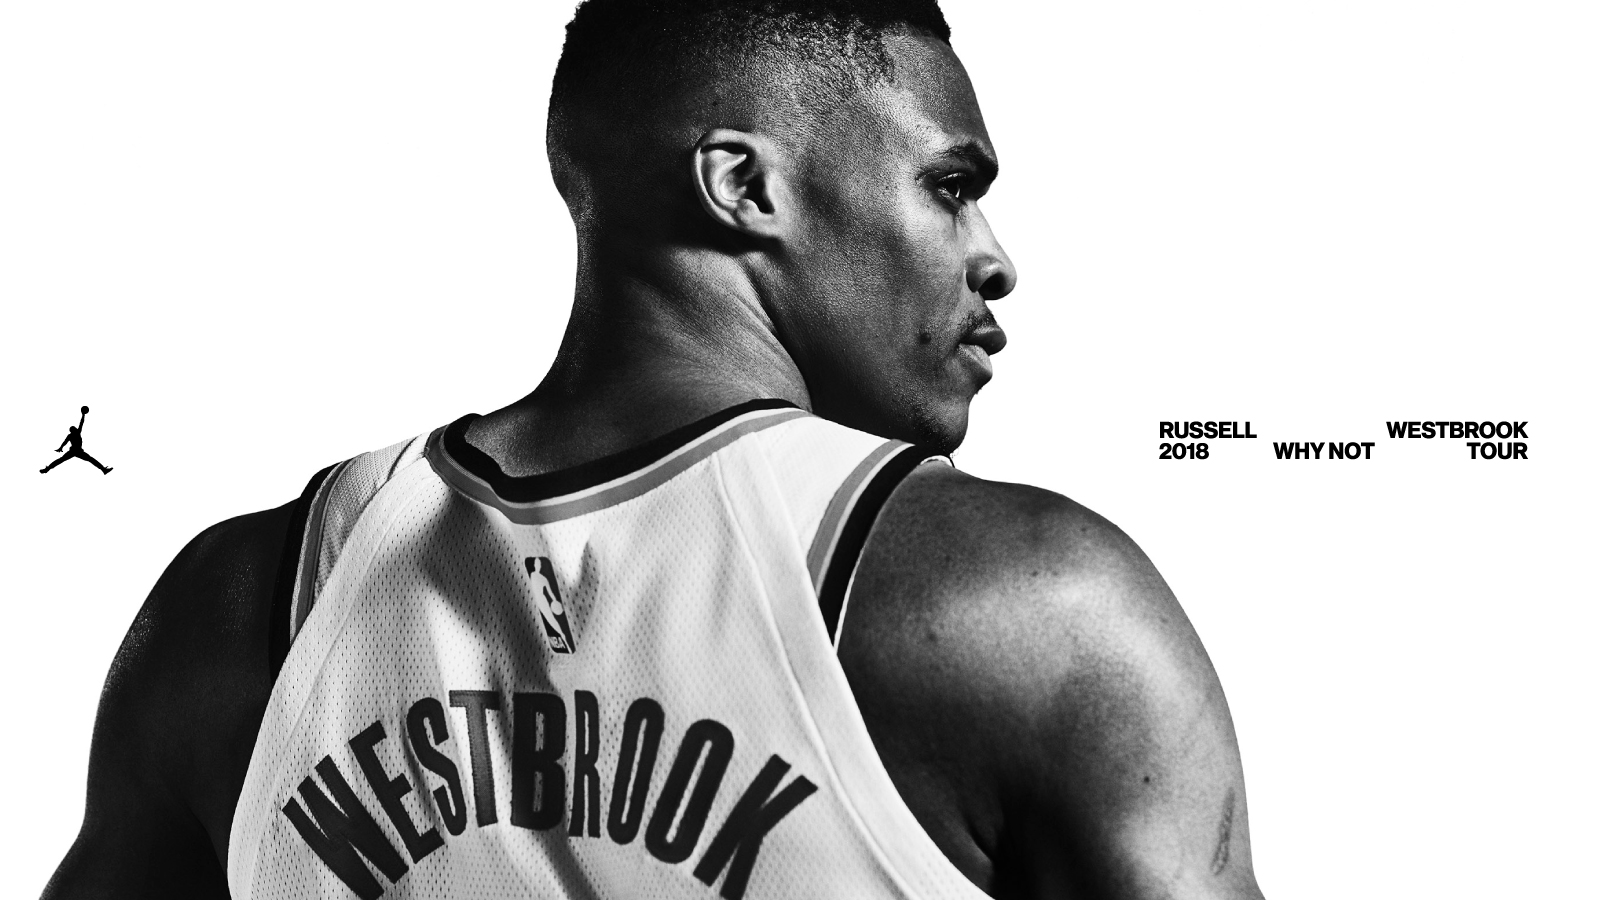 RUSSELL WESTBROOK 2018 WHY NOT TOUR AT NIKE HARAJUKU